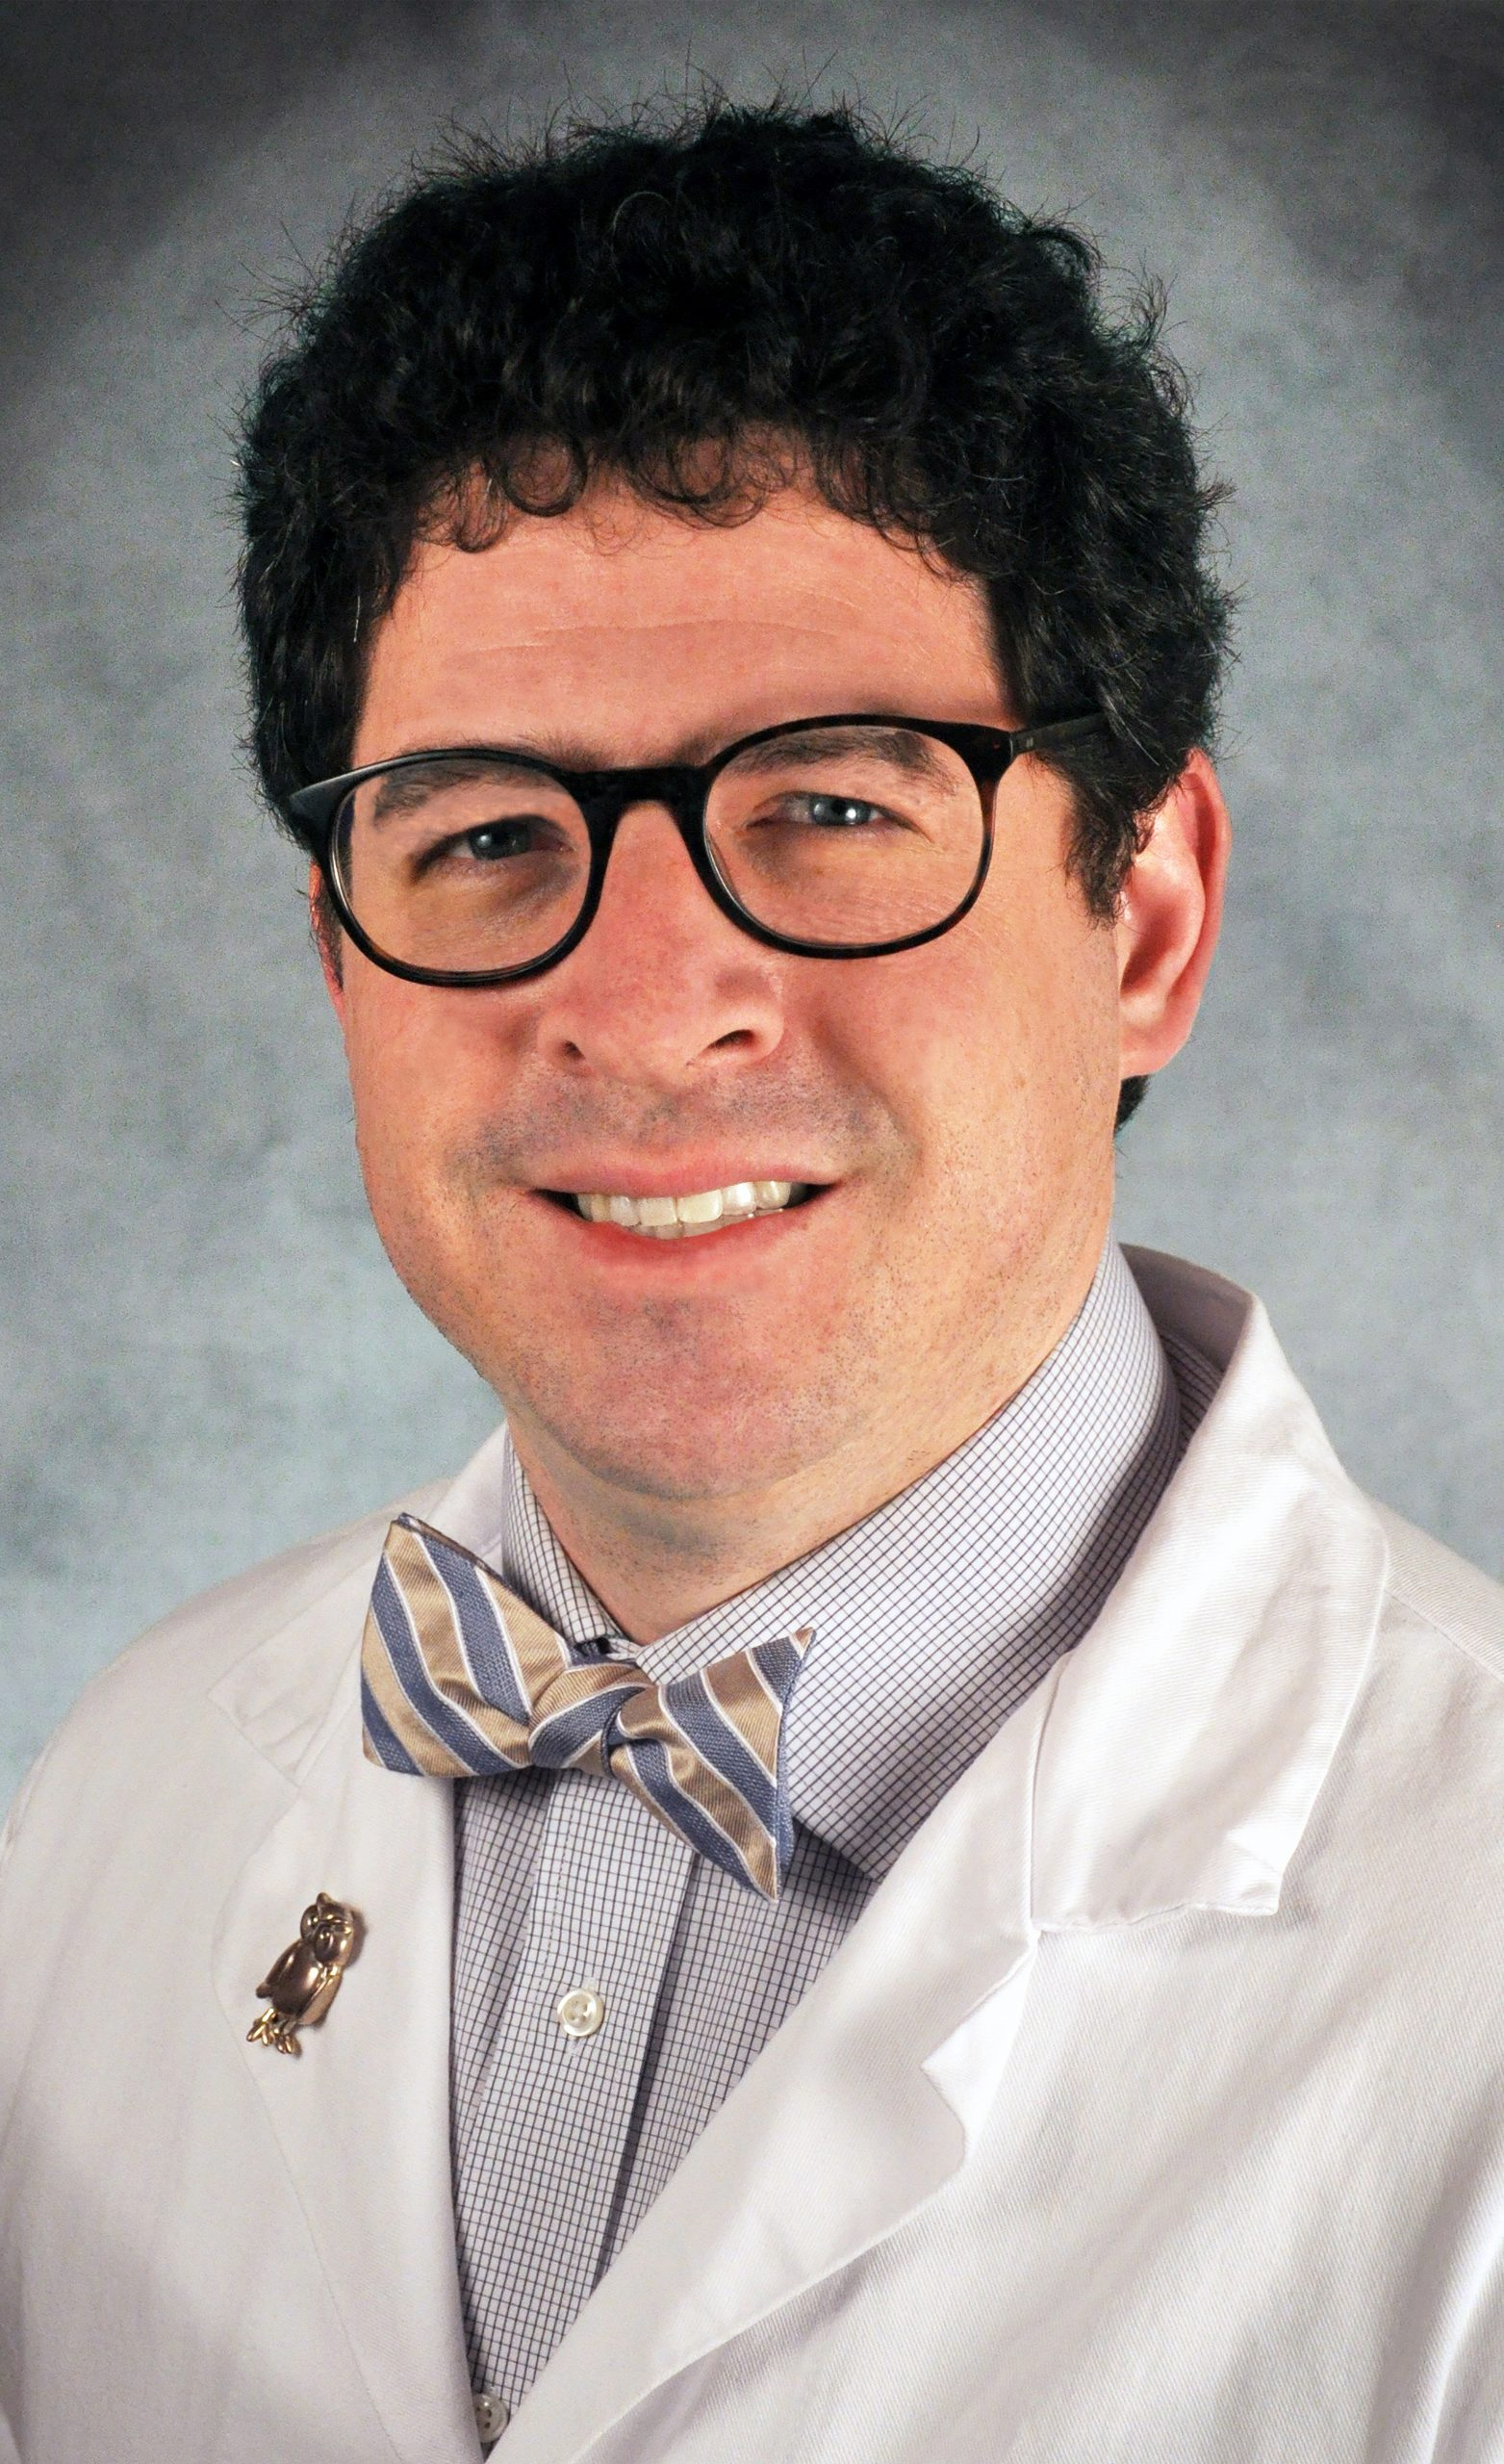 Jeffrey M. Blumberg, MD